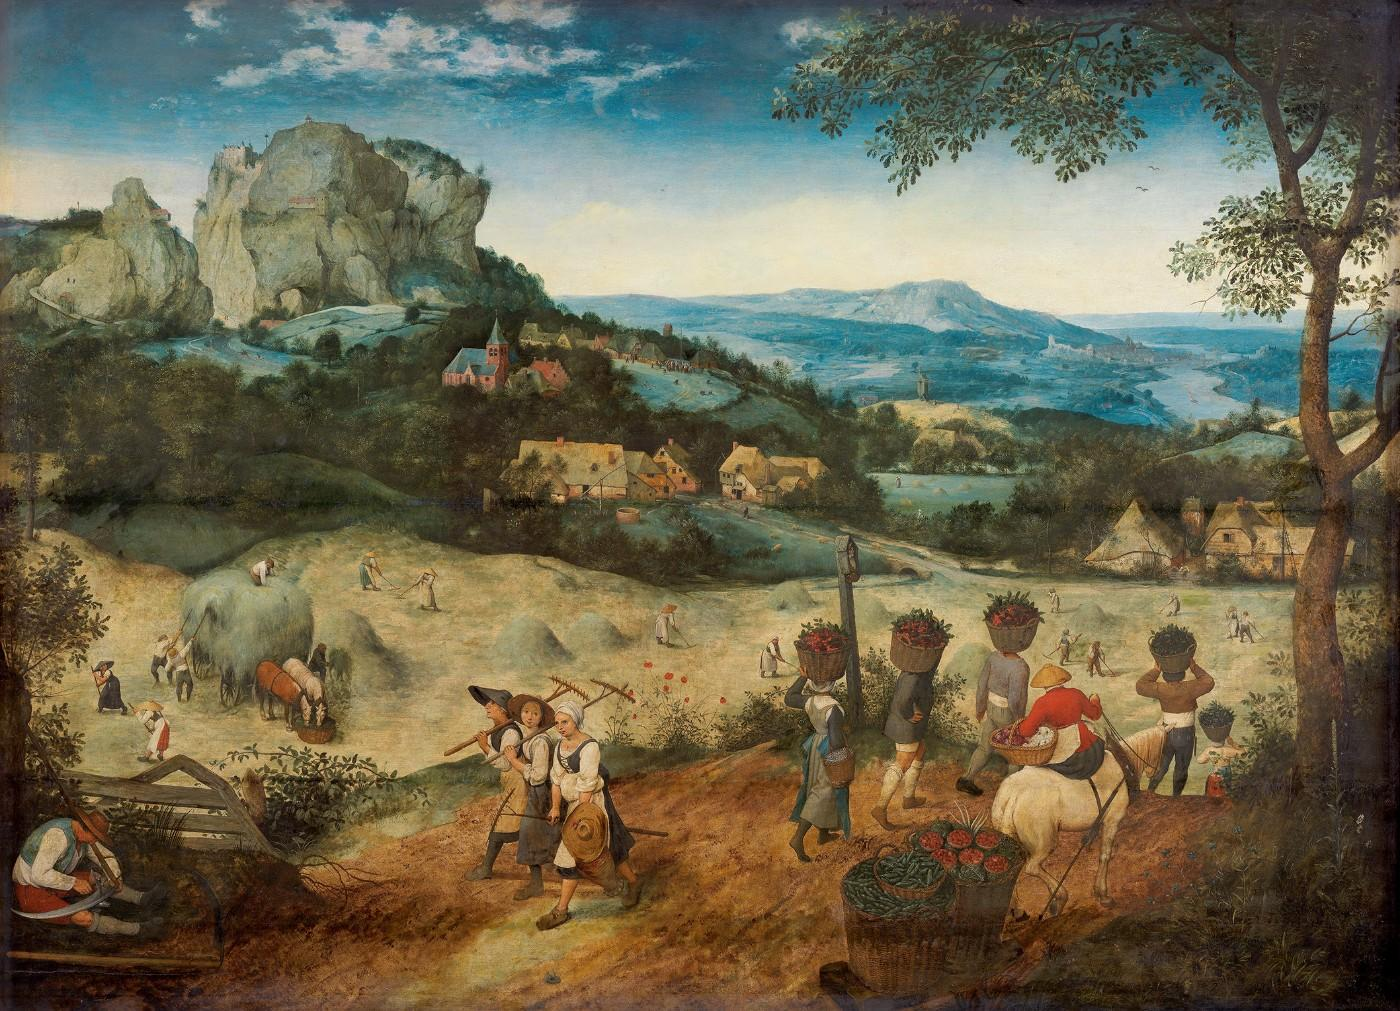 Pieter Bruegel the Elder, The Haymaking, 1565